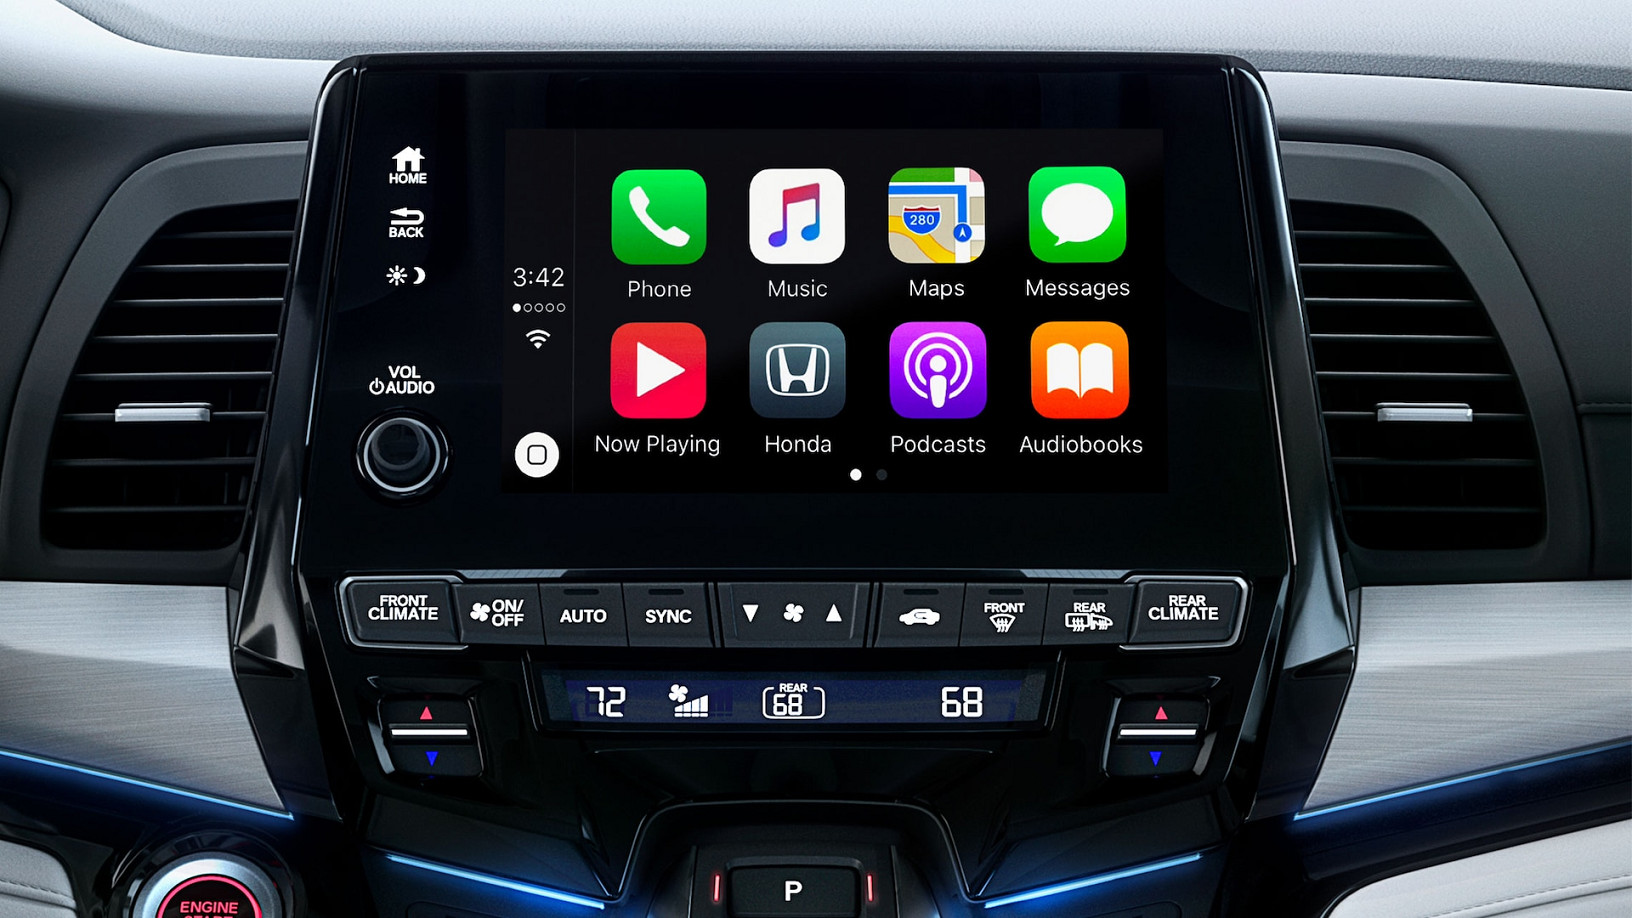 Apple CarPlay® in the 2020 Odyssey